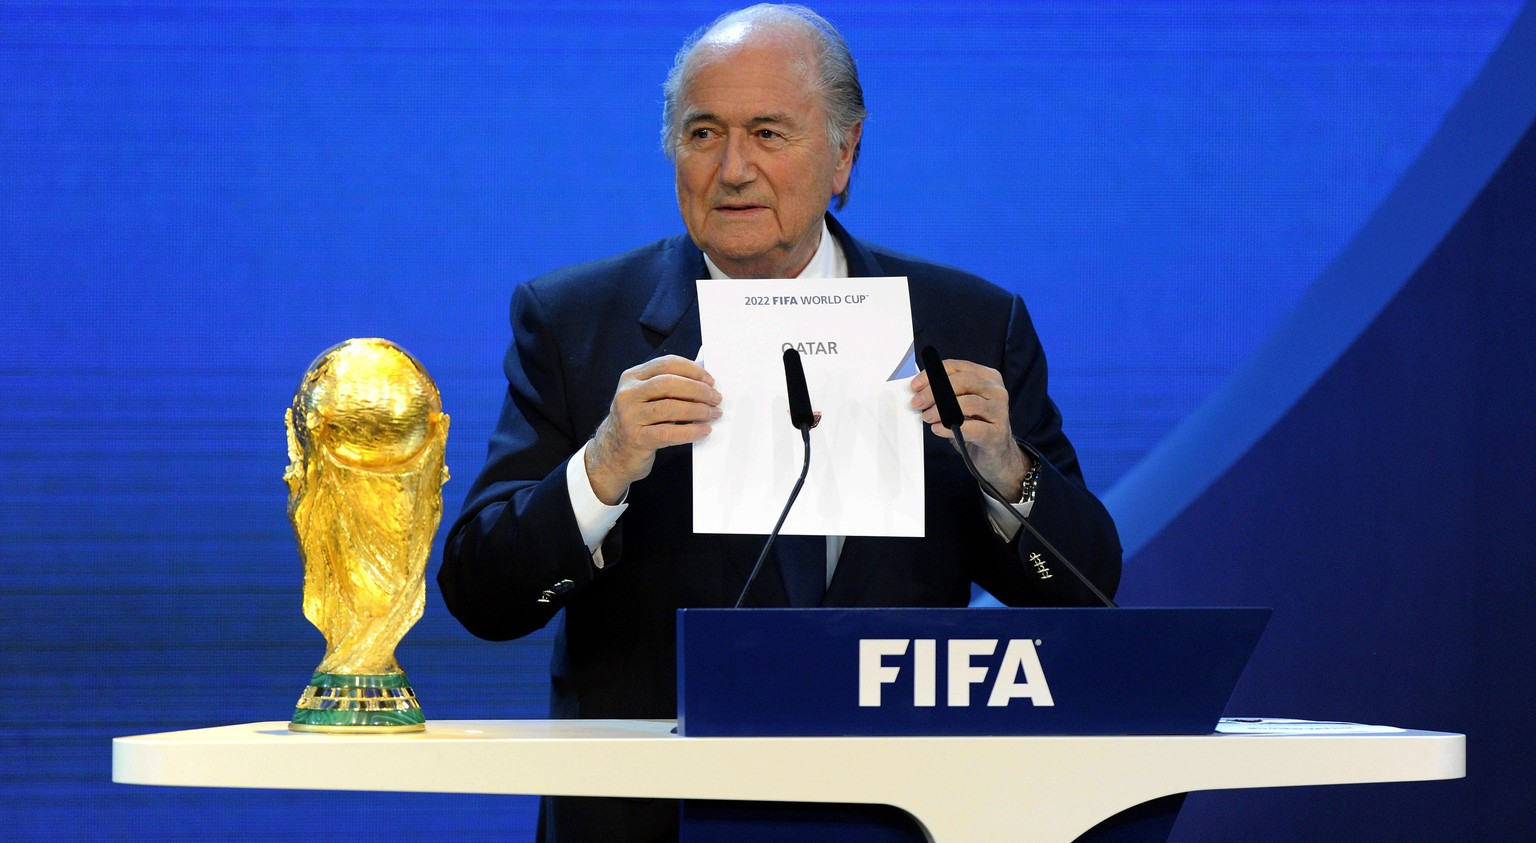 FILE - In this Dec. 2, 2010 file picture FIFA President Joseph S. Blatter announces that Qatar will be hosting the 2022 Soccer World Cup, during the FIFA  2018 and 2022 World Cup Bid Announcement in Zurich, Switzerland. A FIFA task force on Tuesday, Feb. 24, 2015 recommended playing the 2022 World Cup in November-December to avoid the summer heat in Qatar. The plan must be approved by the FIFA executive committee, chaired by Blatter, at a March 19-20, 2015 meeting in Zurich. (AP Photo/Keystone/Walter Bieri, File)